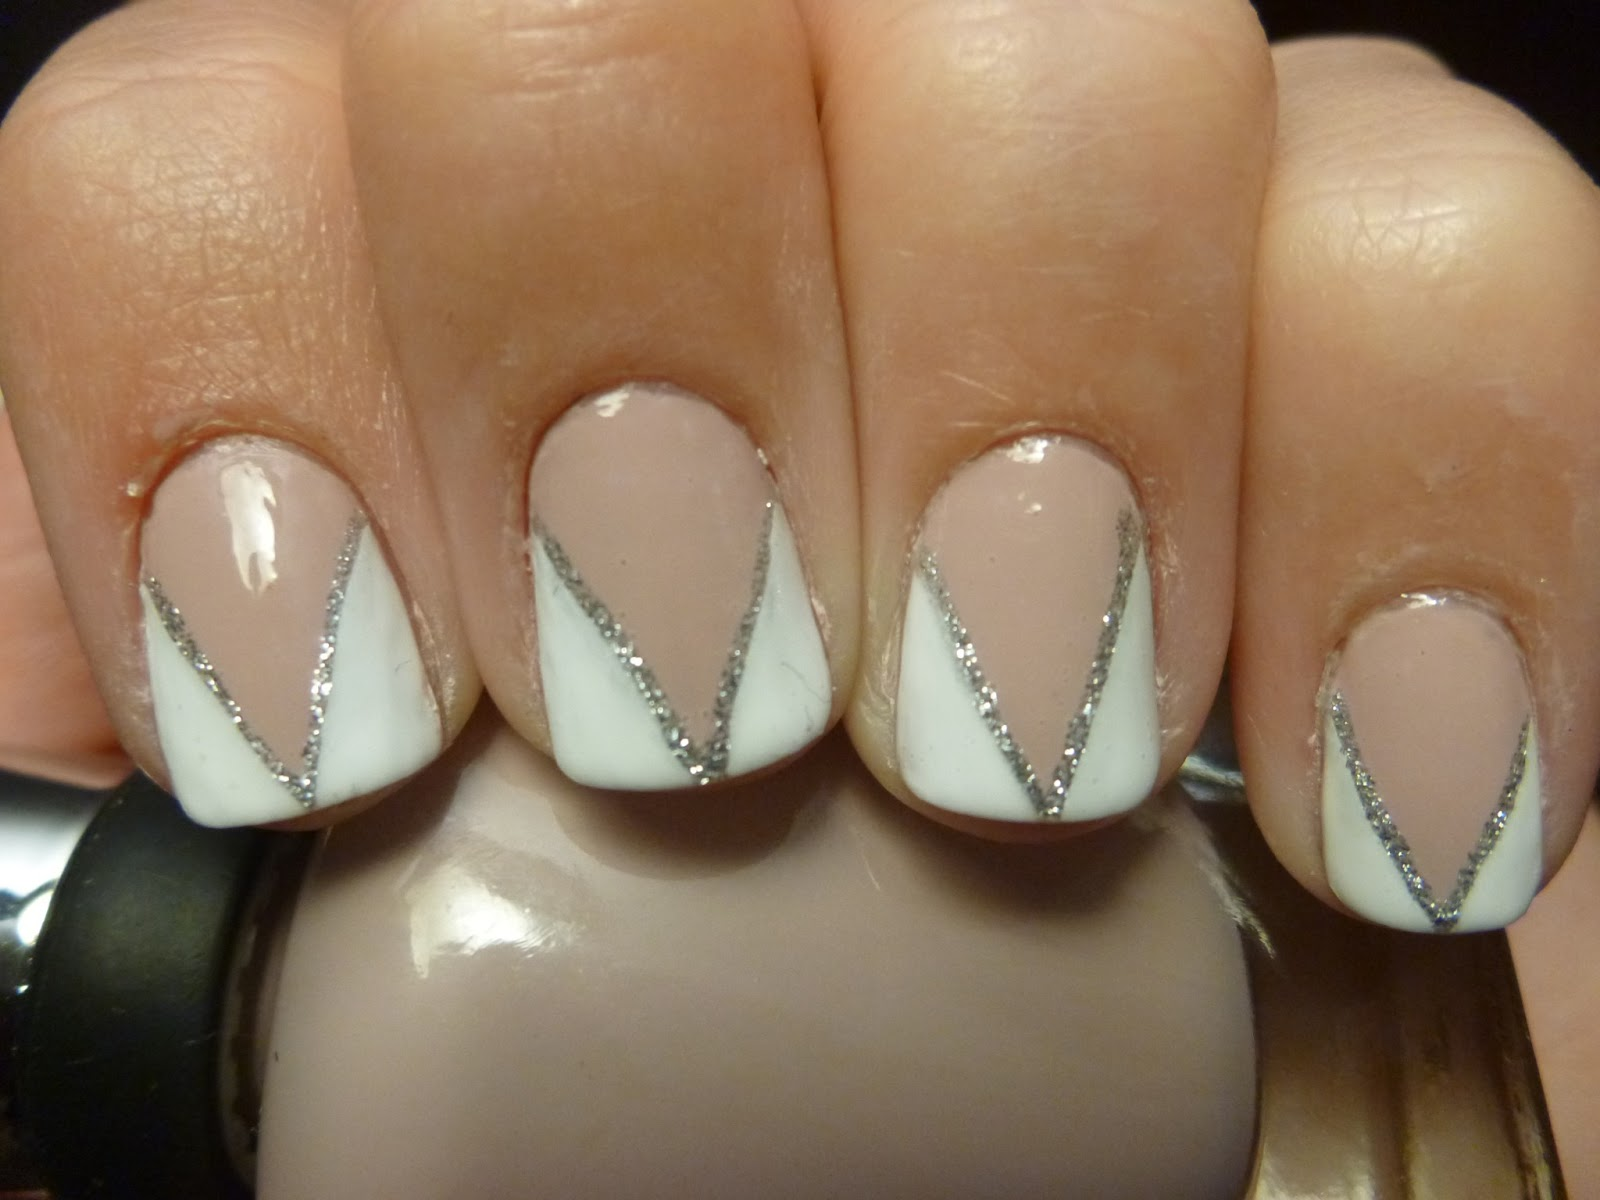 Adventures in Manicures: New nail shape and fancy french triangles